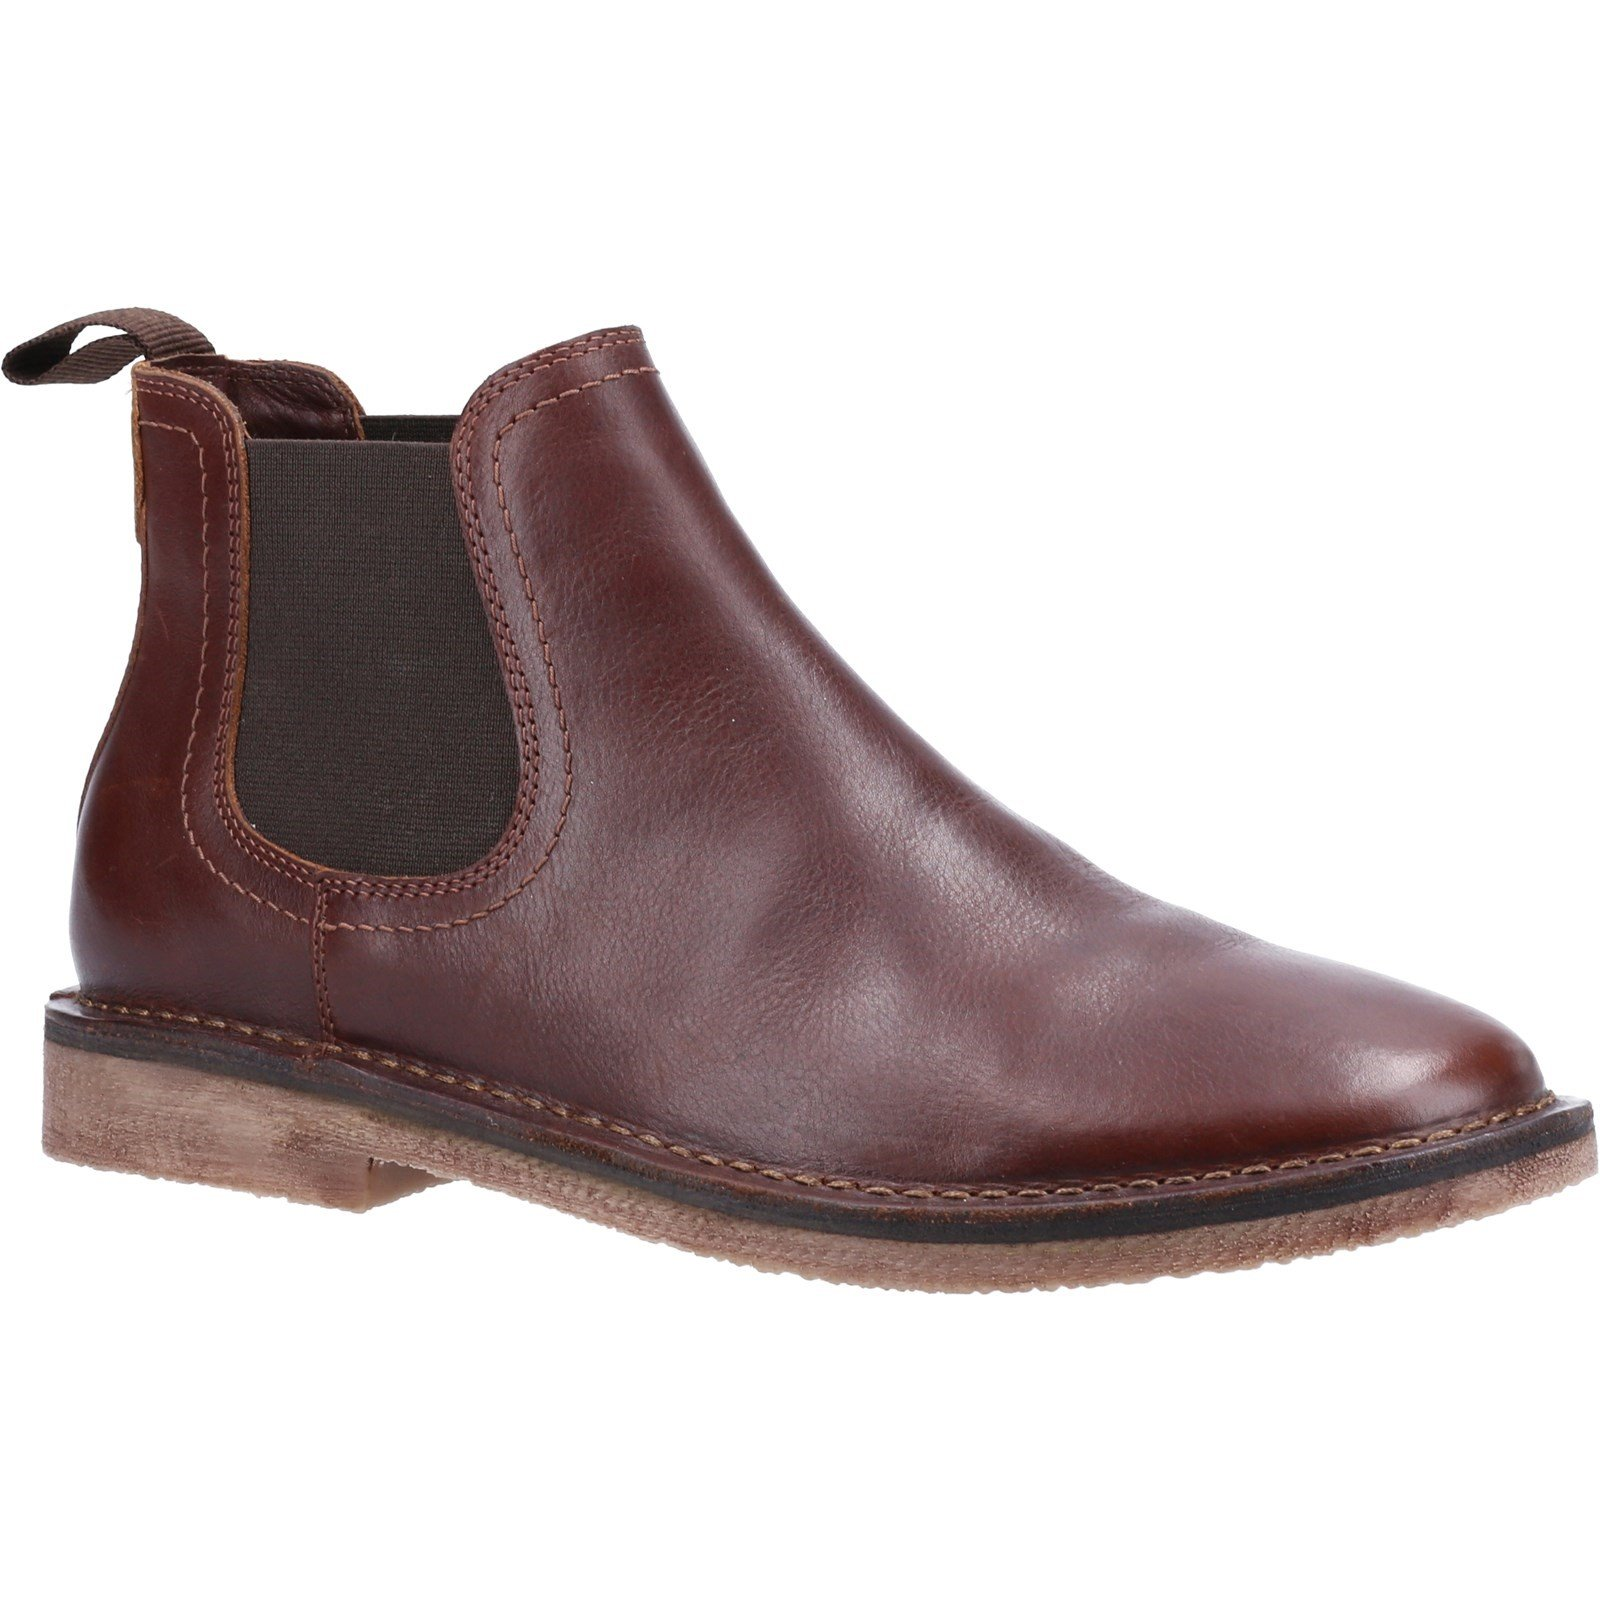 Hush Puppies Men's Shaun Leather Chelsea Boot Various Colours 32897 - Brown 7